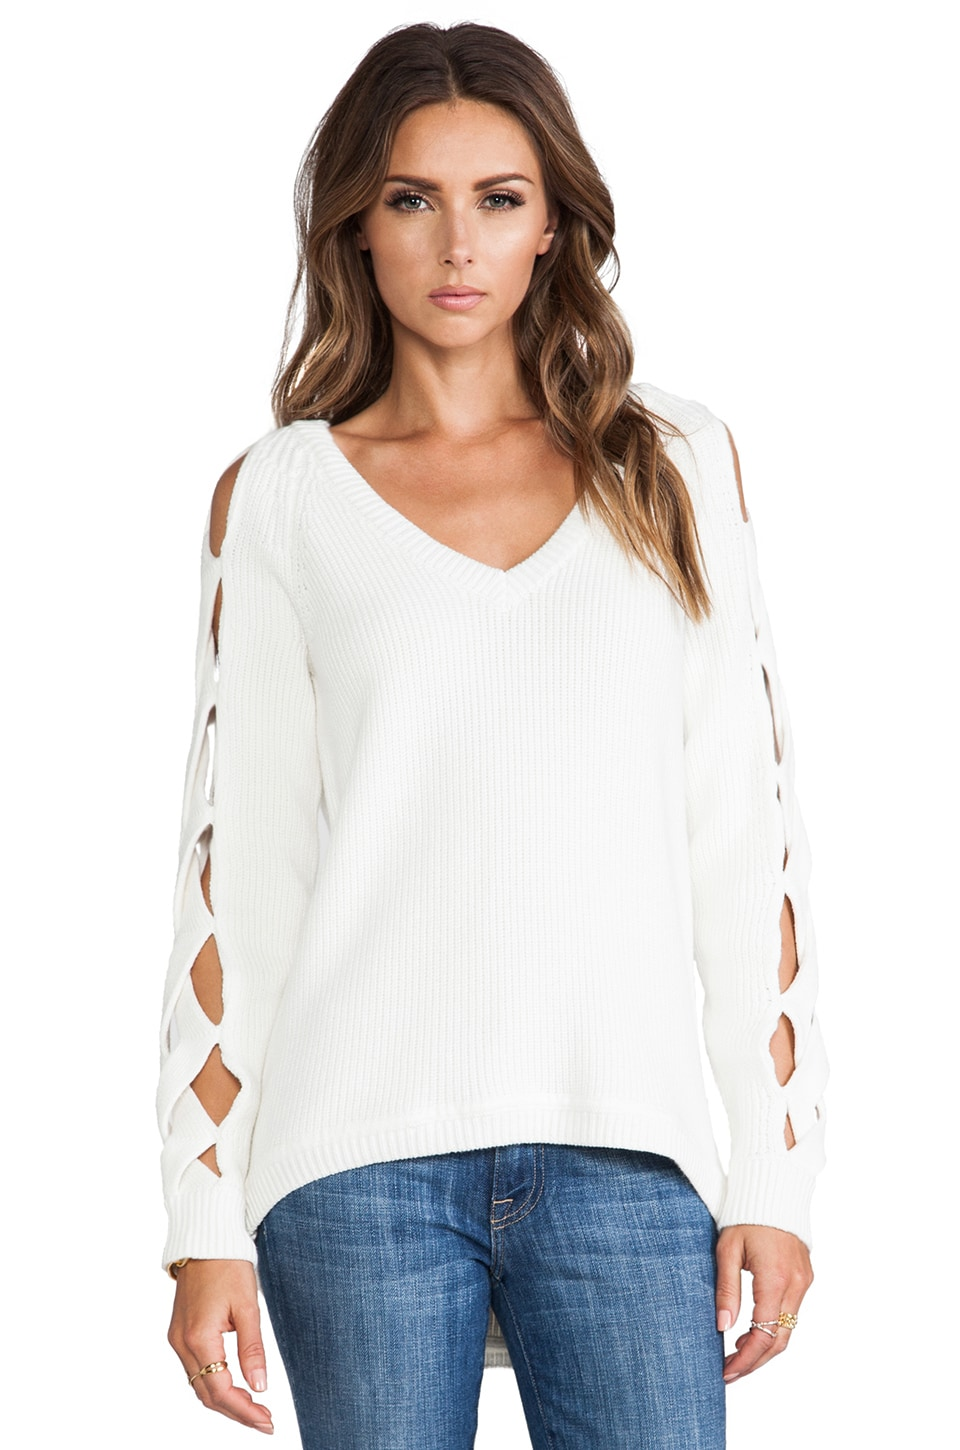 MILLY Peek-a-boo Sleeve Tunic in White